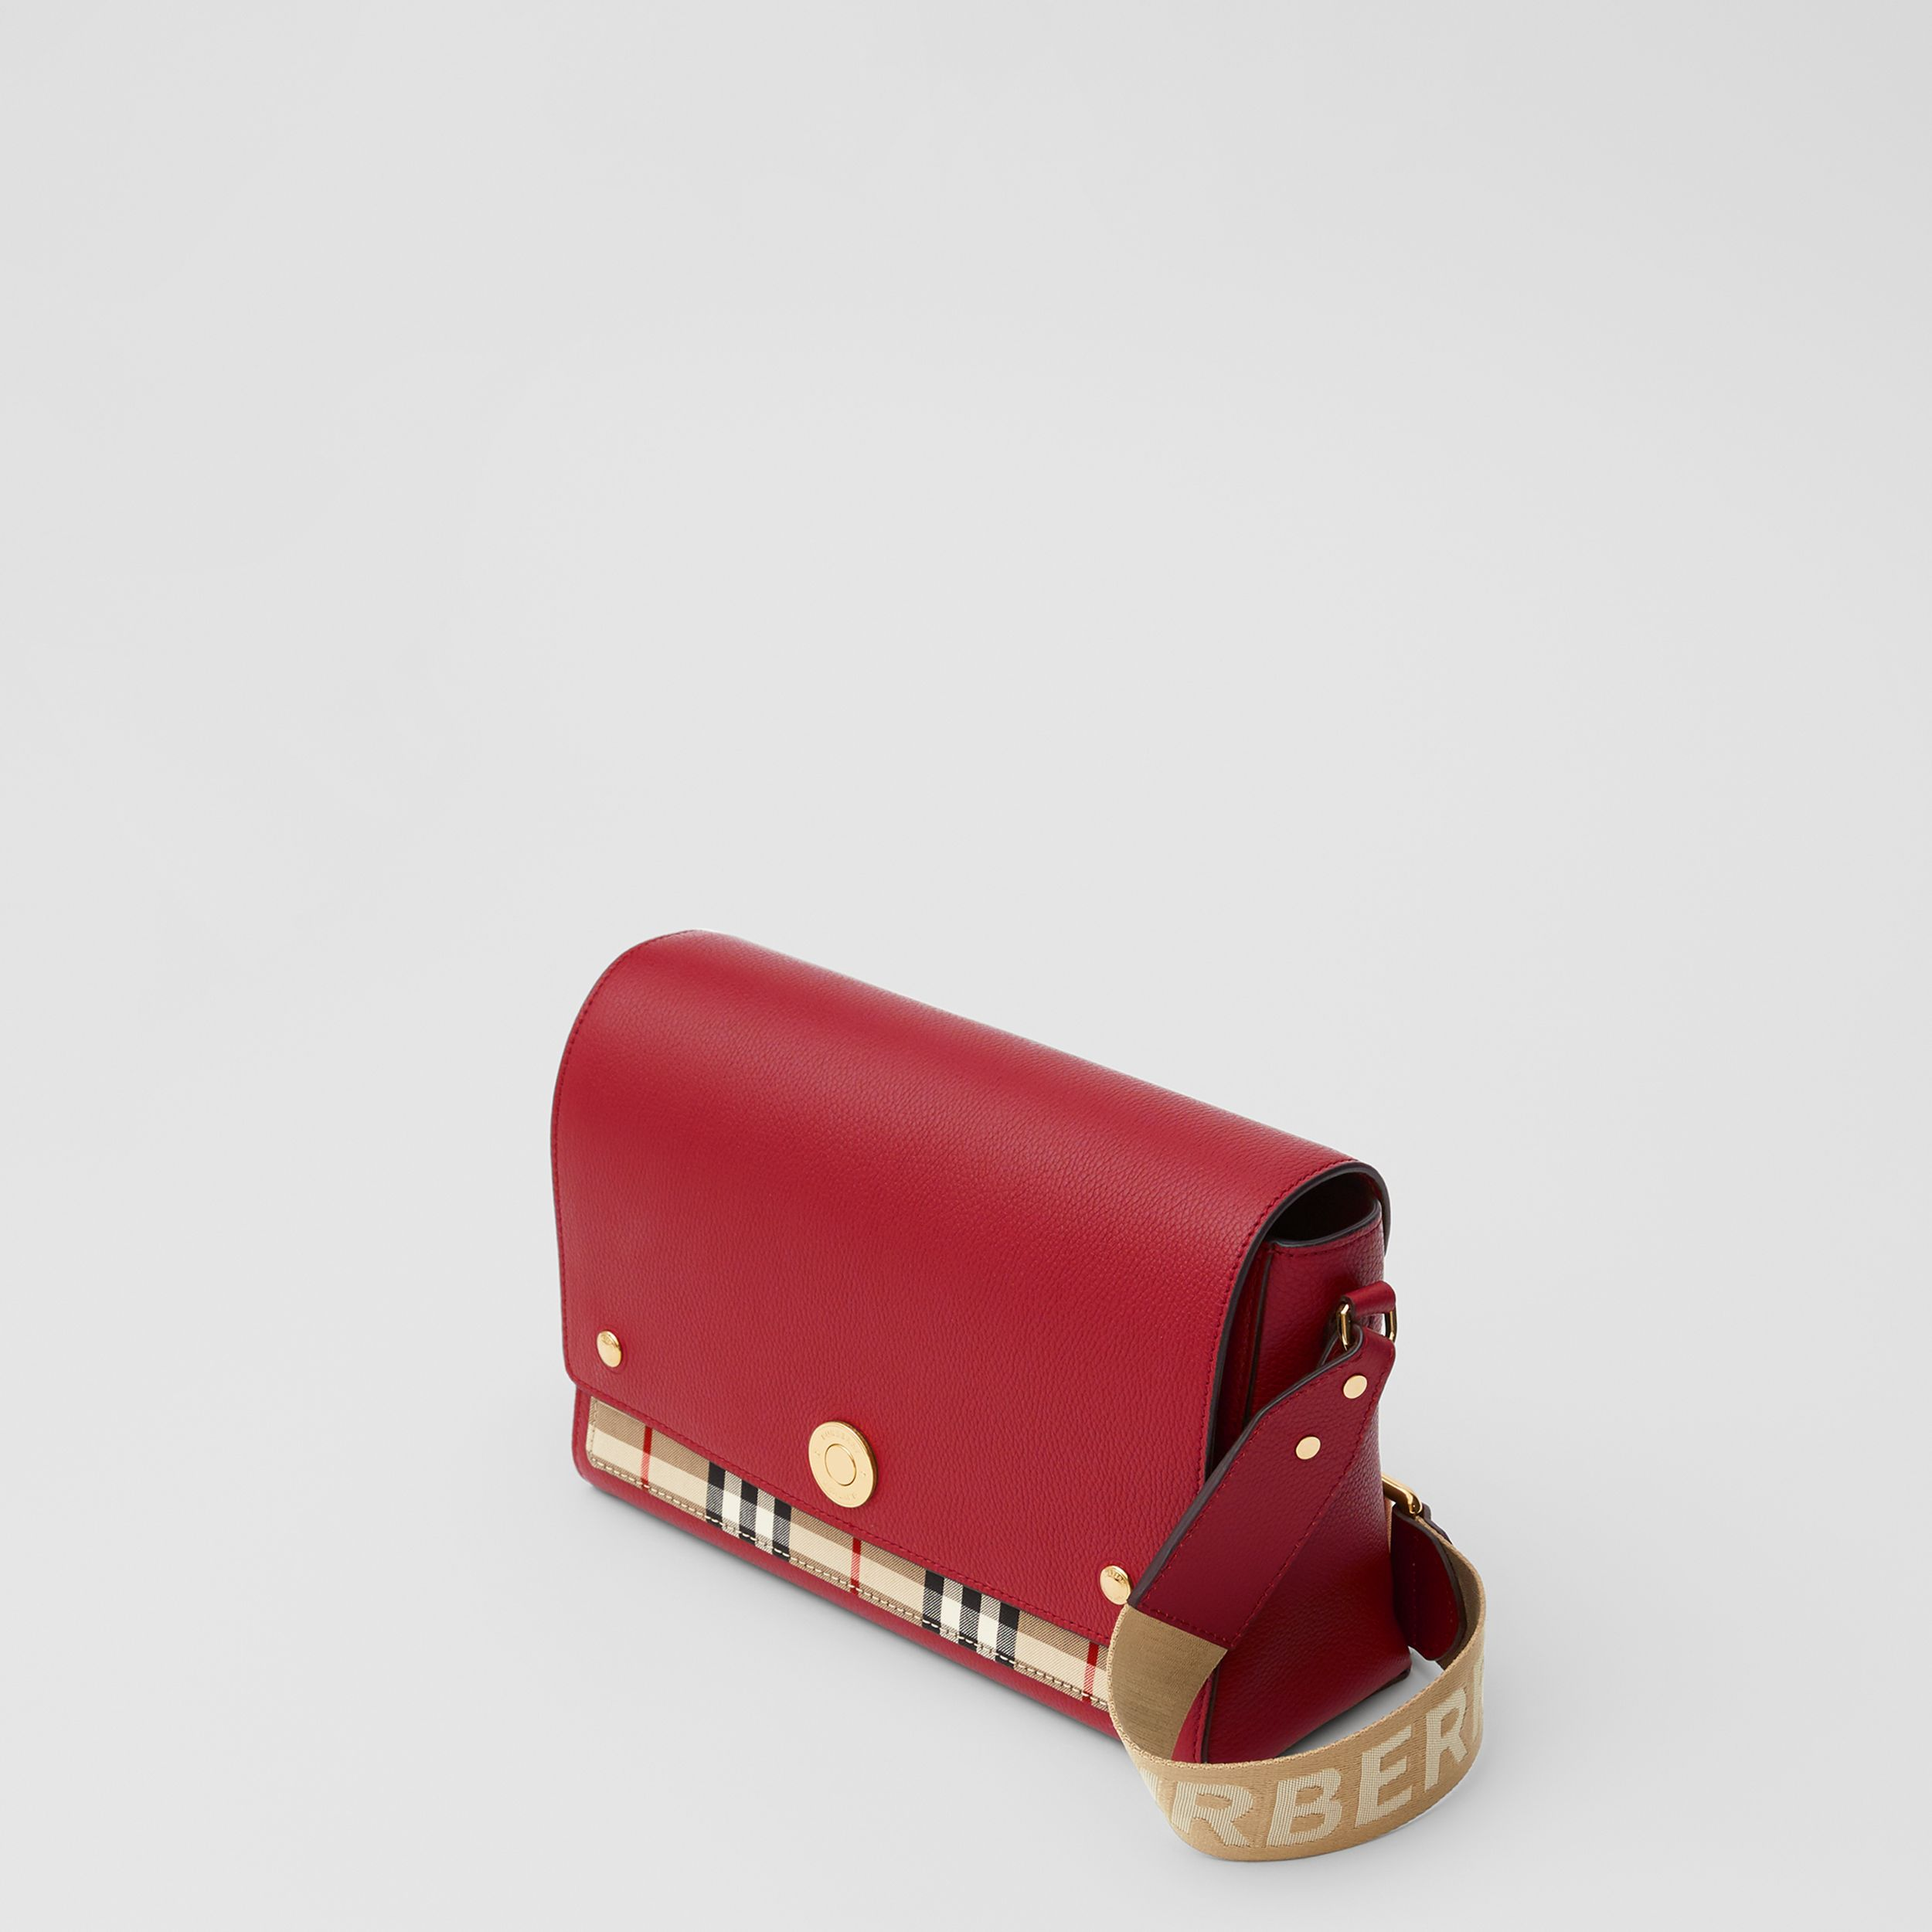 Leather and Vintage Check Note Crossbody Bag in Dark Carmine - Women | Burberry - 4